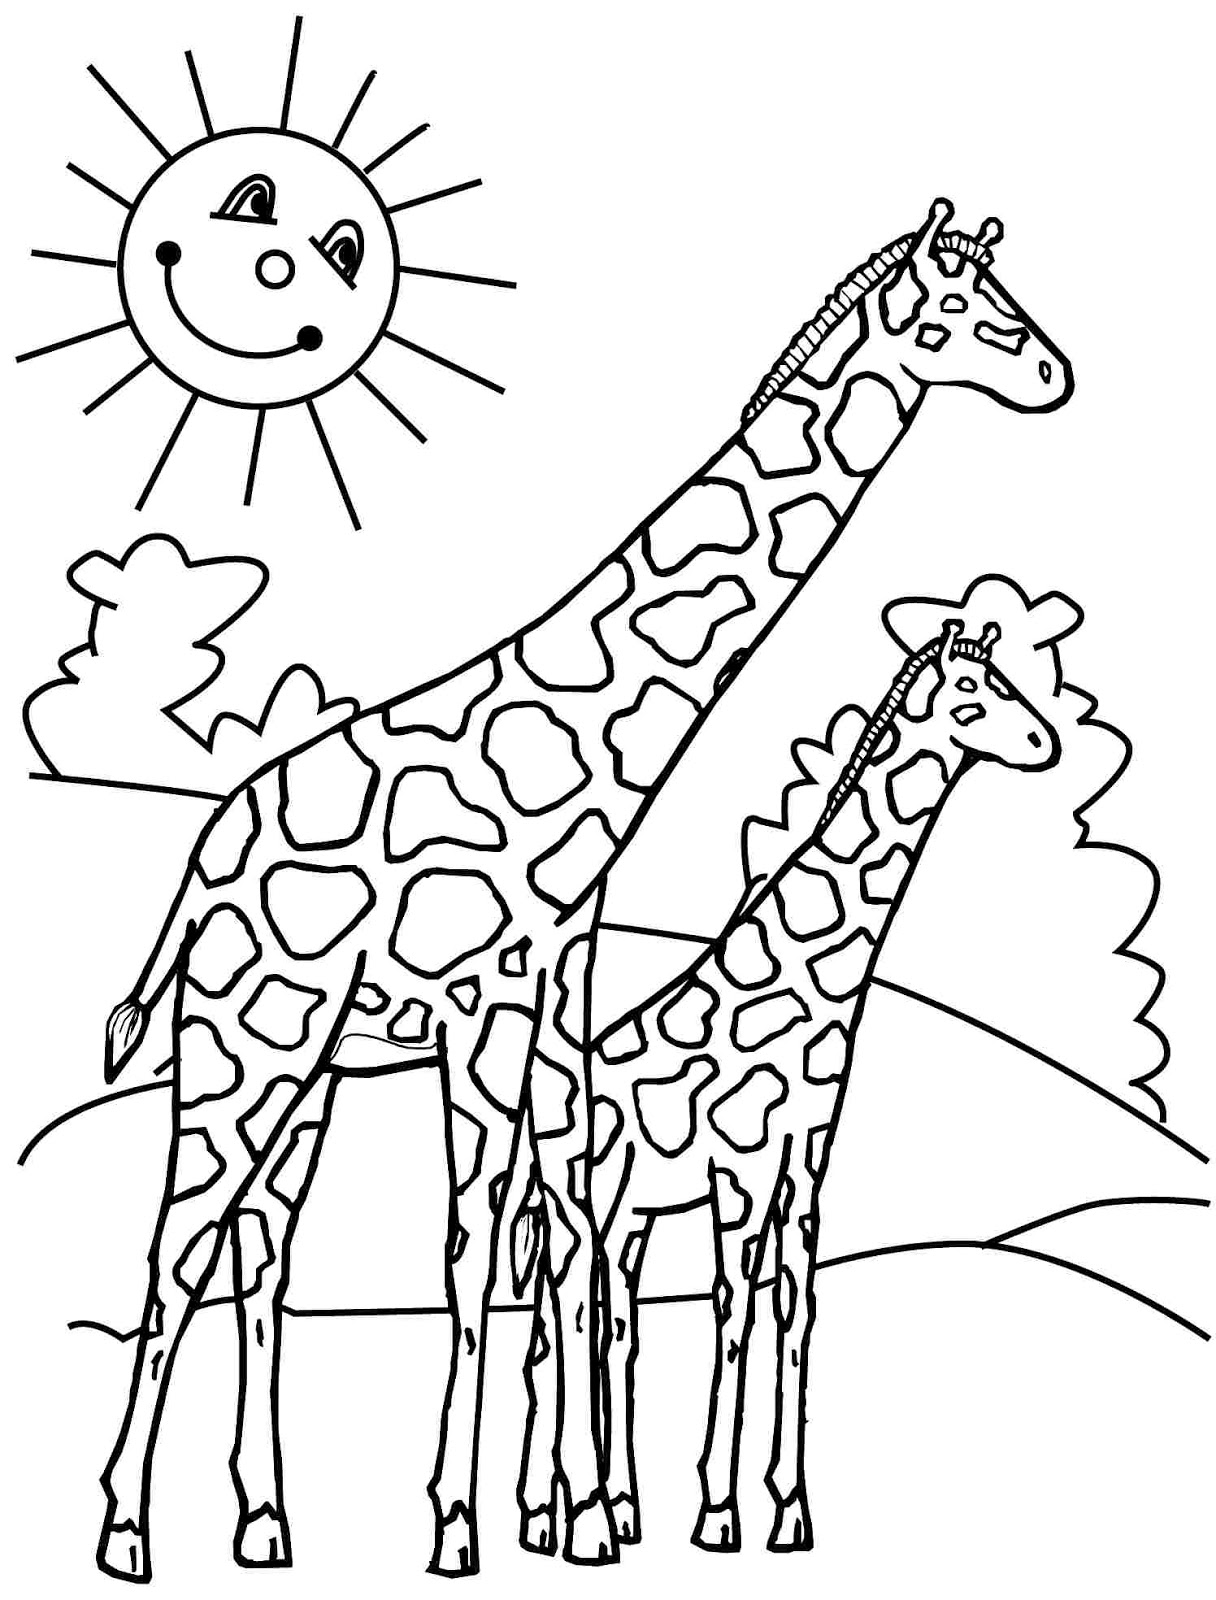 top 11 free printable giraffe coloring pages for kids